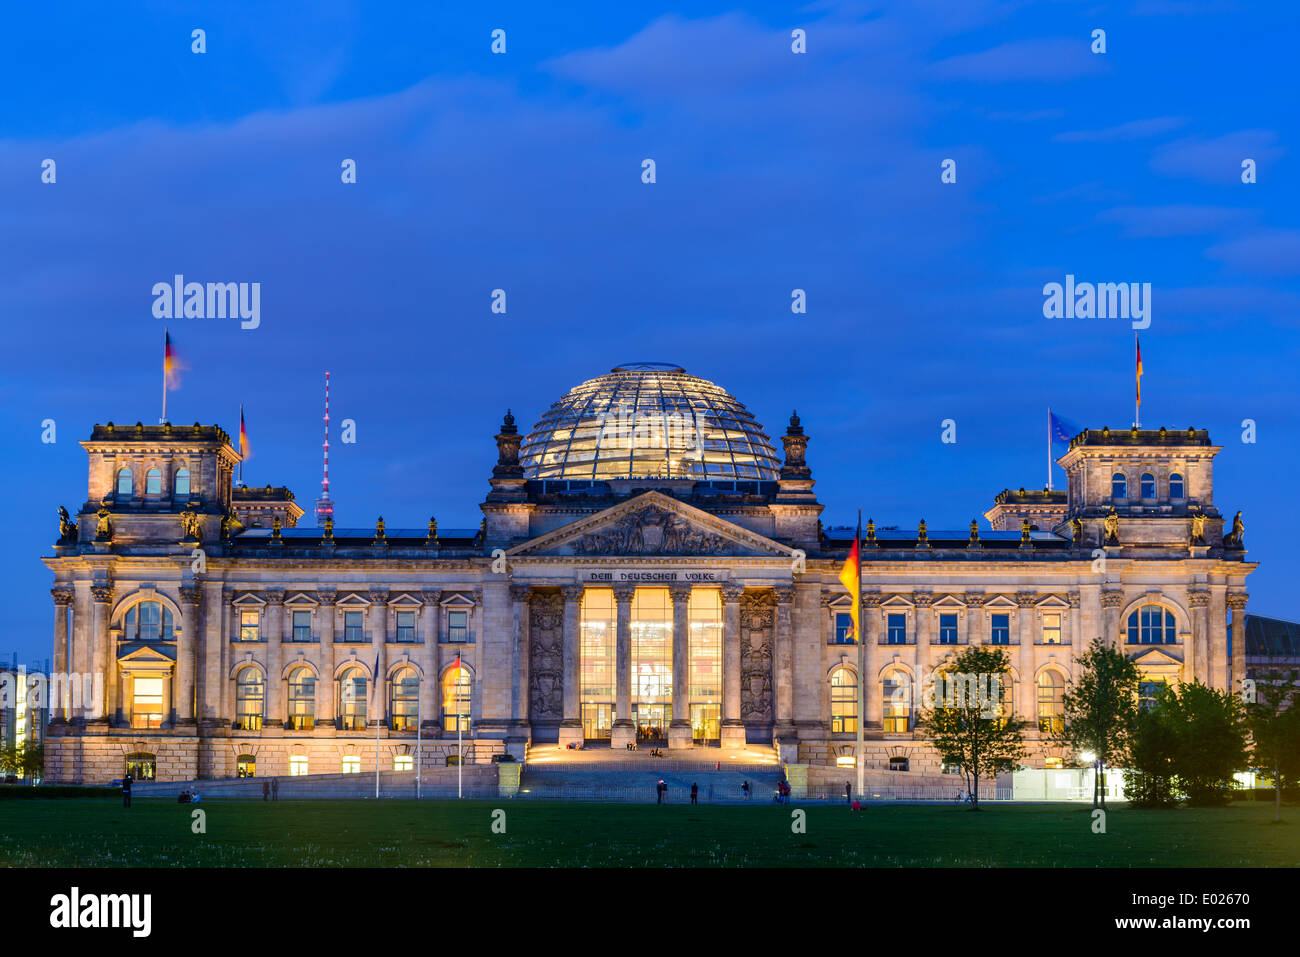 reichstag or bundestag building in berlin, germany, at night Stock Photo